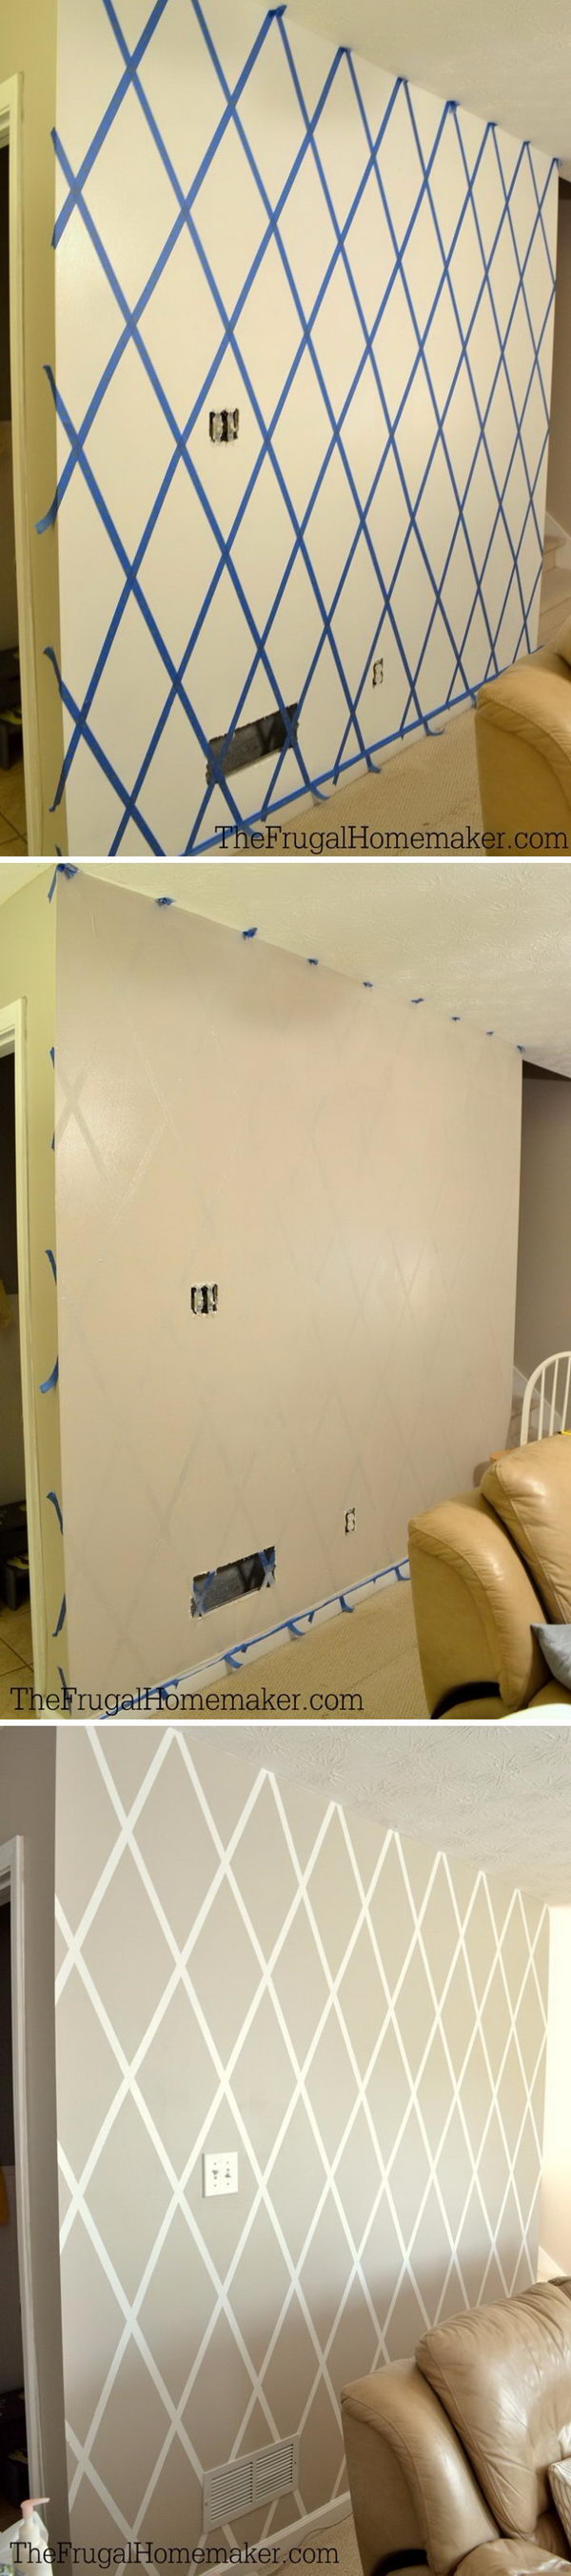 Diamond Accent Wall Using Scotchblue Tape.